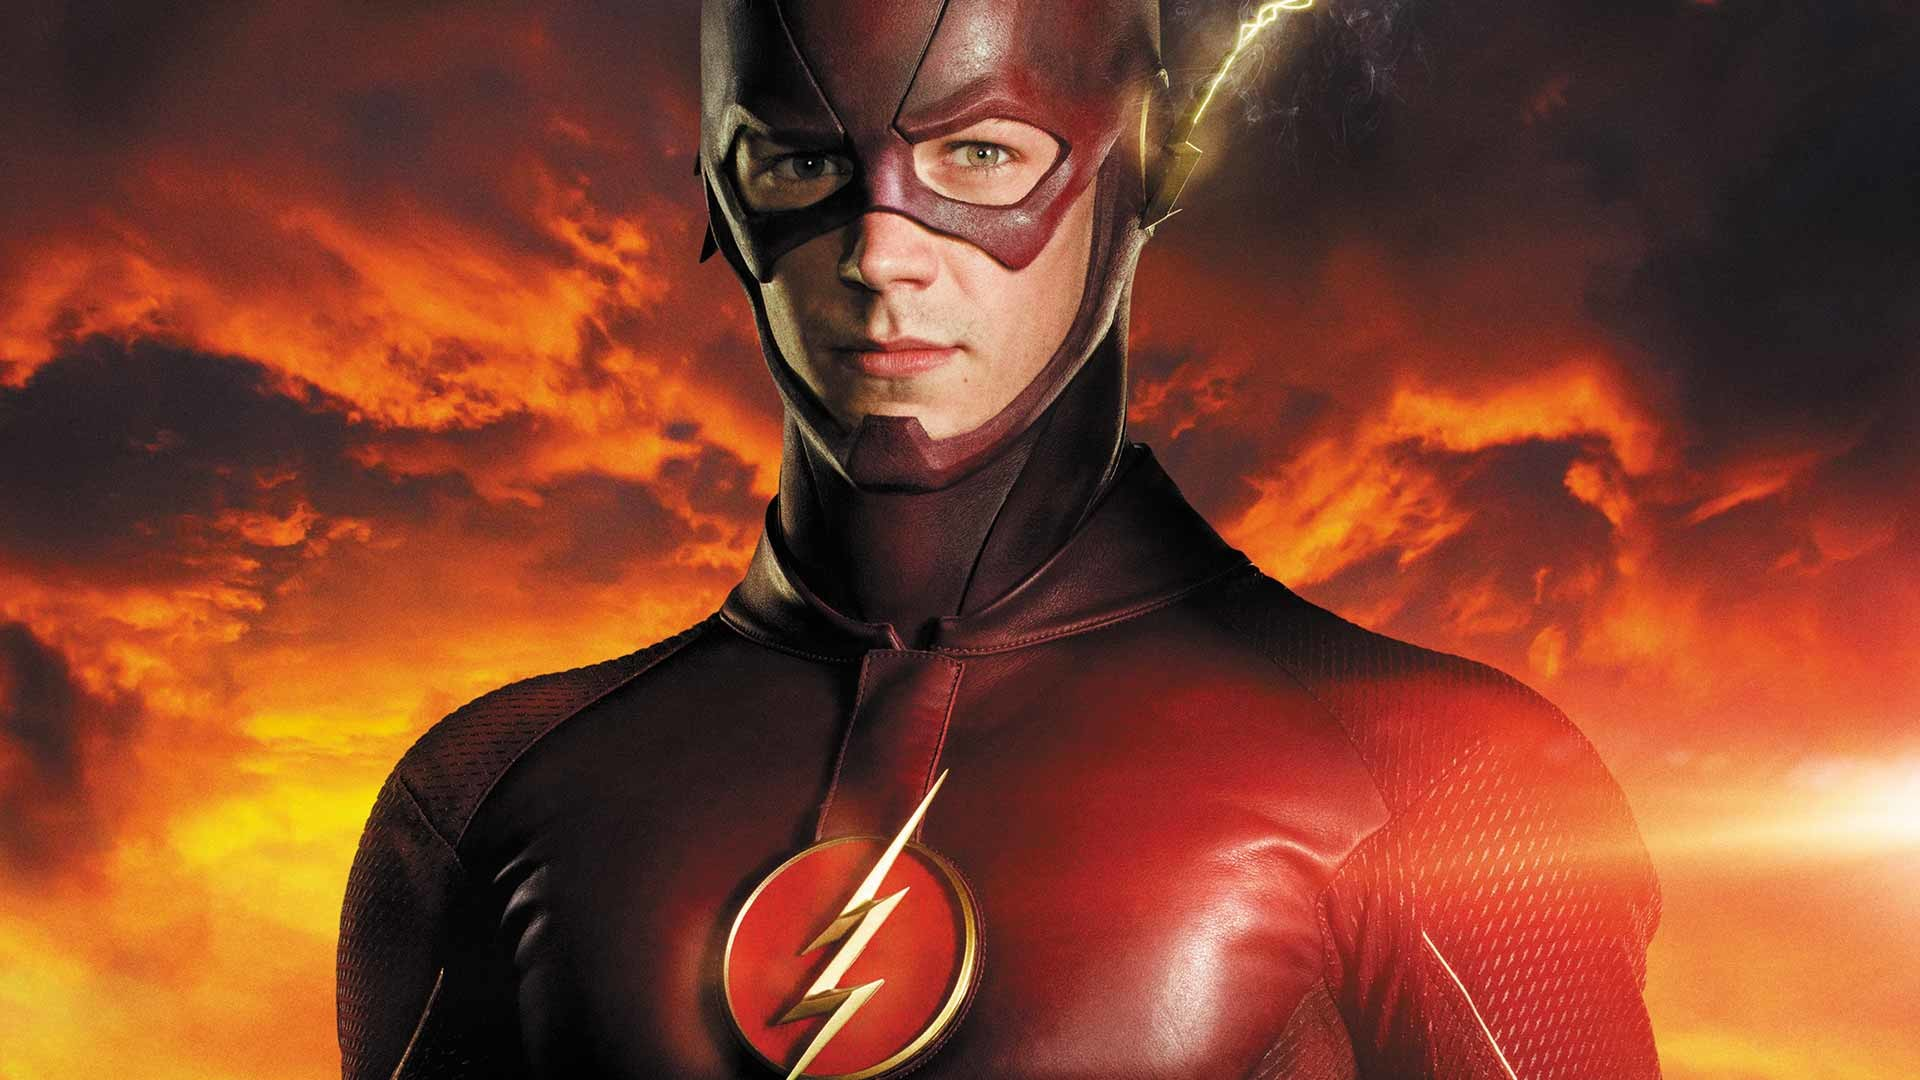 1920x1080 <b>The Flash</b> 2x14 harrison wells use time vault to